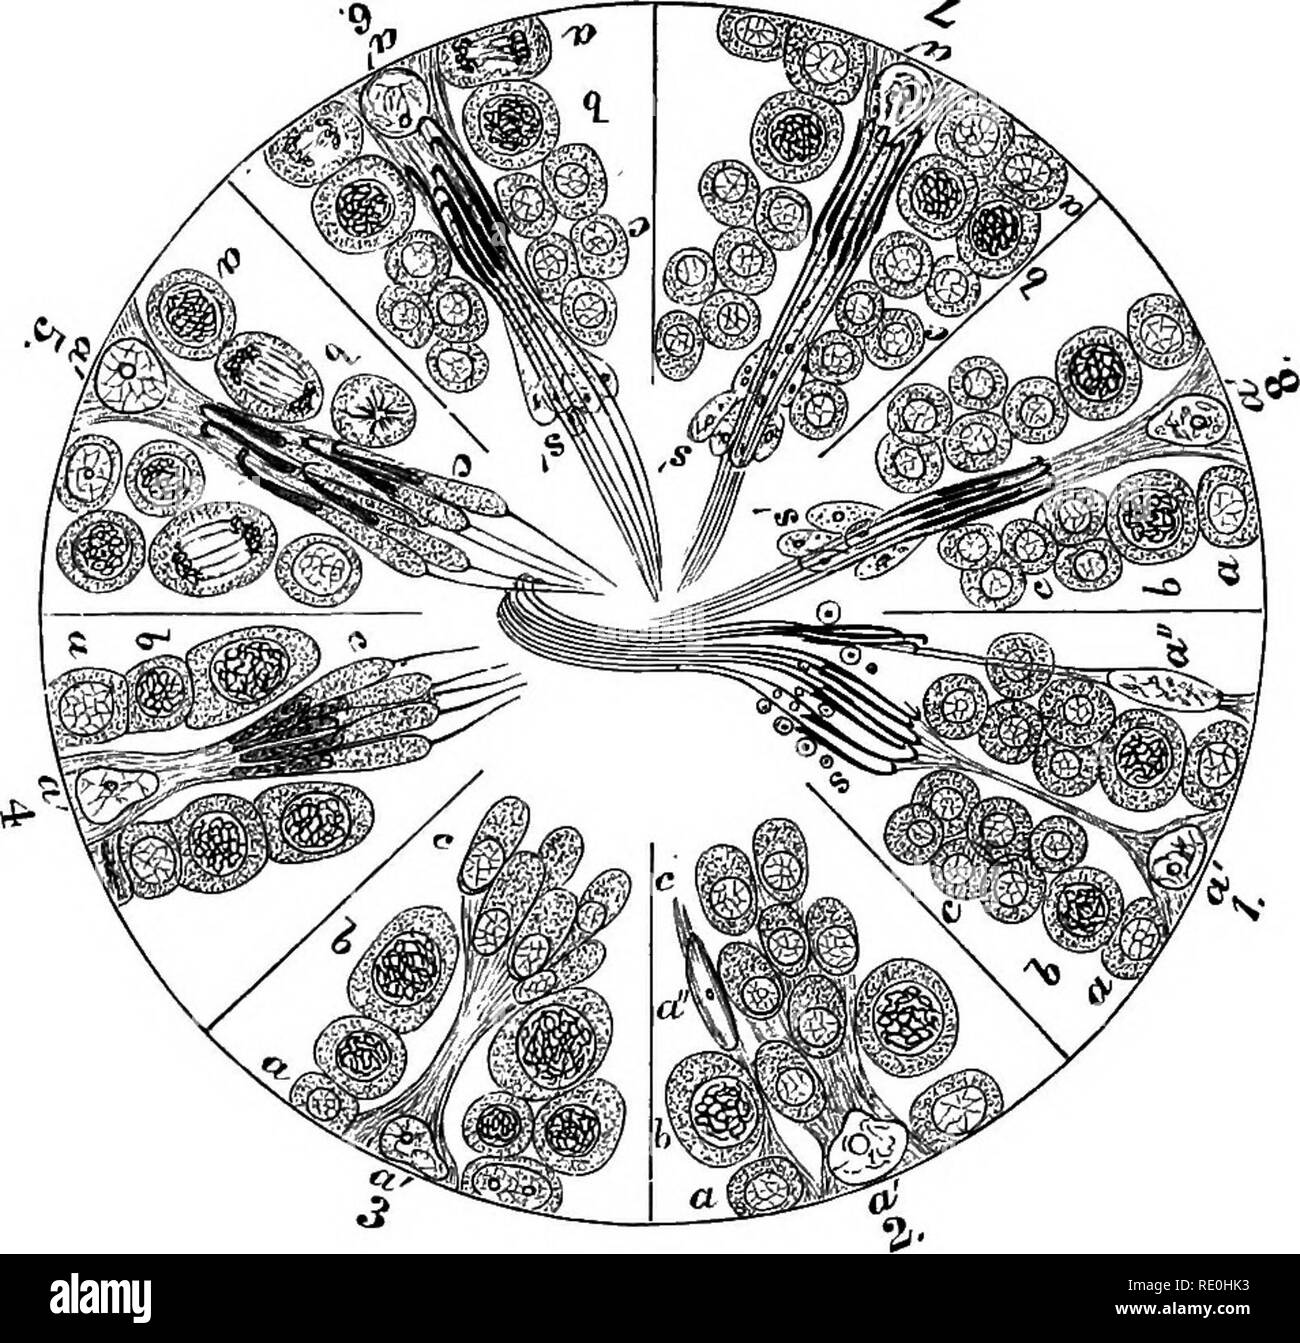 """. The physiology of reproduction. Reproduction. Fig. 43.—A cell of Sertoli with which the spermatids (three of which are shown) are beginning to be connected—human. (After Bramman, from Schafer.) The cell contains globules of nutritive substance and similar smaller globules are seen in the spermatids.. FiG. 44.—Diagram illustrating the cycle of phases in spermatogenesis. (From Schafer.) a, spermatogonia (seen dividing at 6) ; a', a"""", Sertoli cells; ft, spermatocytes (seen dividing at 5); c, spermatids; s', parts of spermatids which dis- appear when spermatozoa are fully formed; s, seminal - Stock Image"""